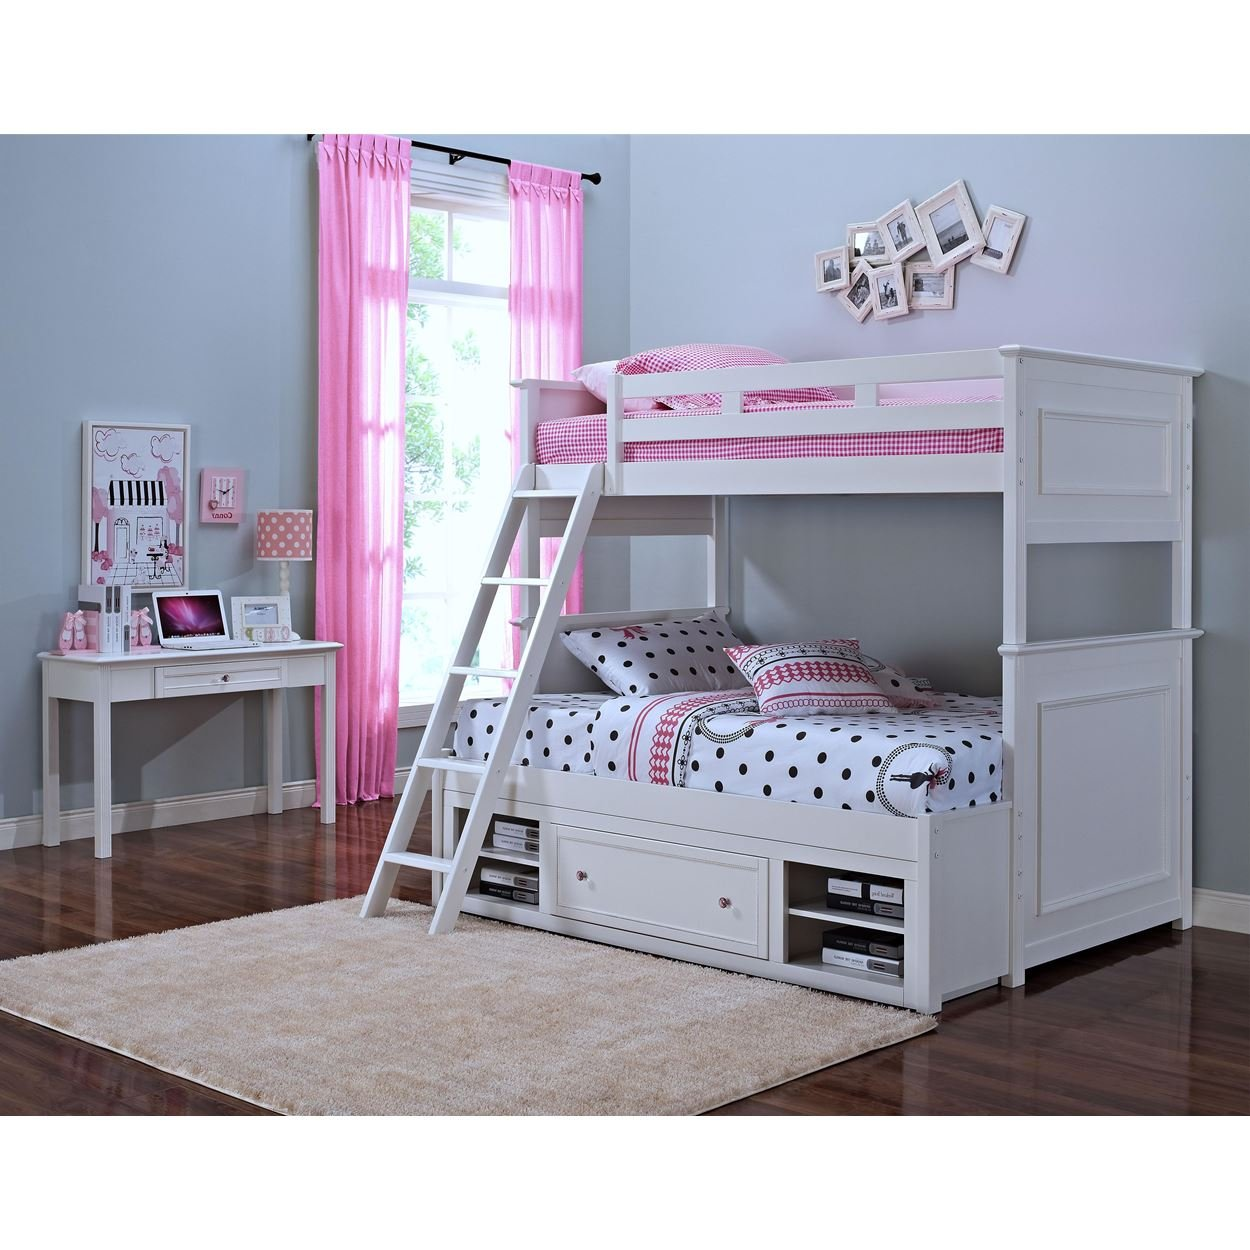 Magnolia Girl's Twin/Twin Bunk with Storage in White